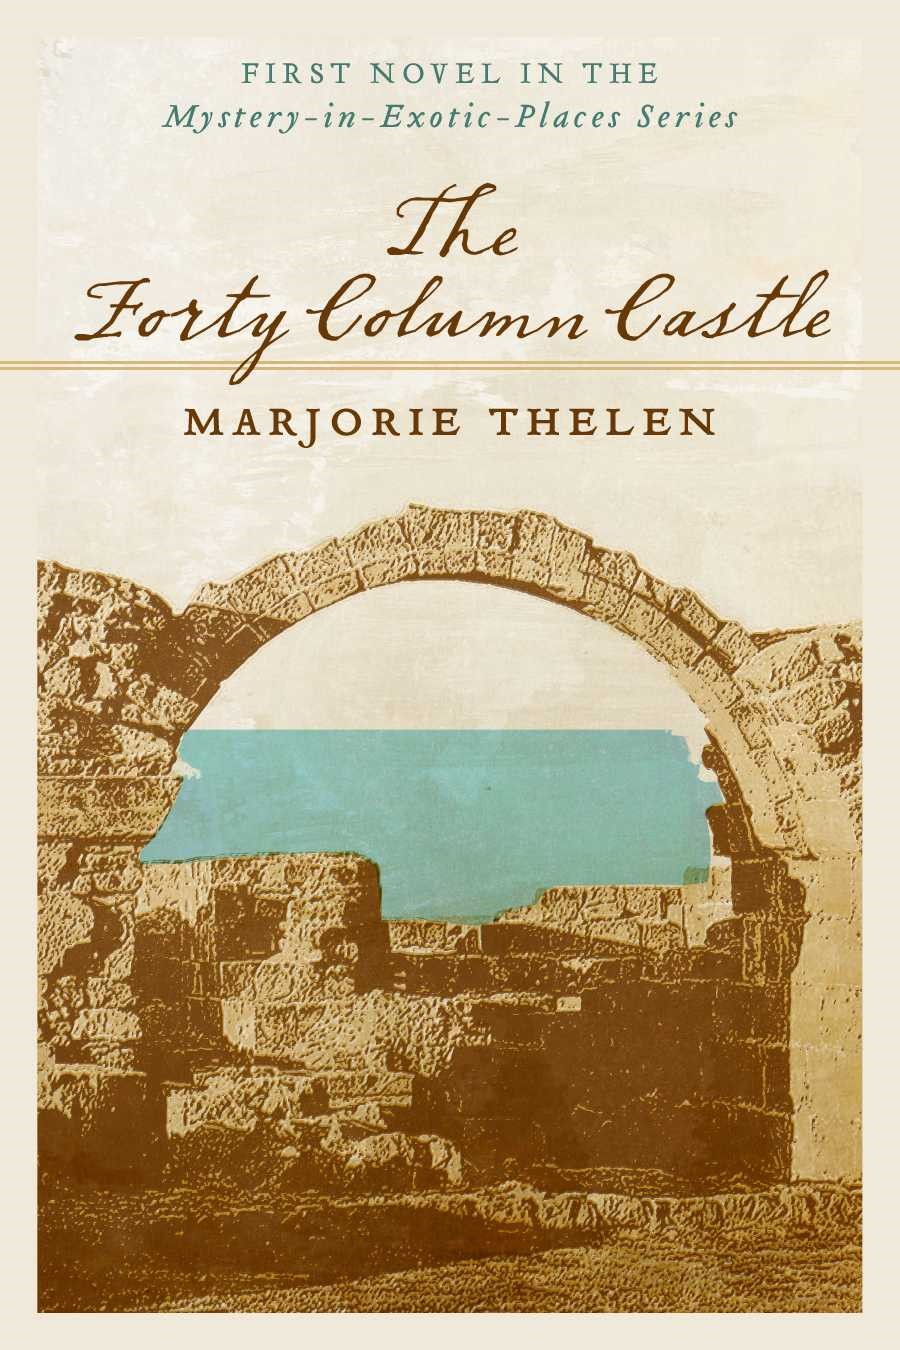 The Forty Column Castle: First Novel in the Mystery-in-Exotic-Places Series By: Marjorie Thelen